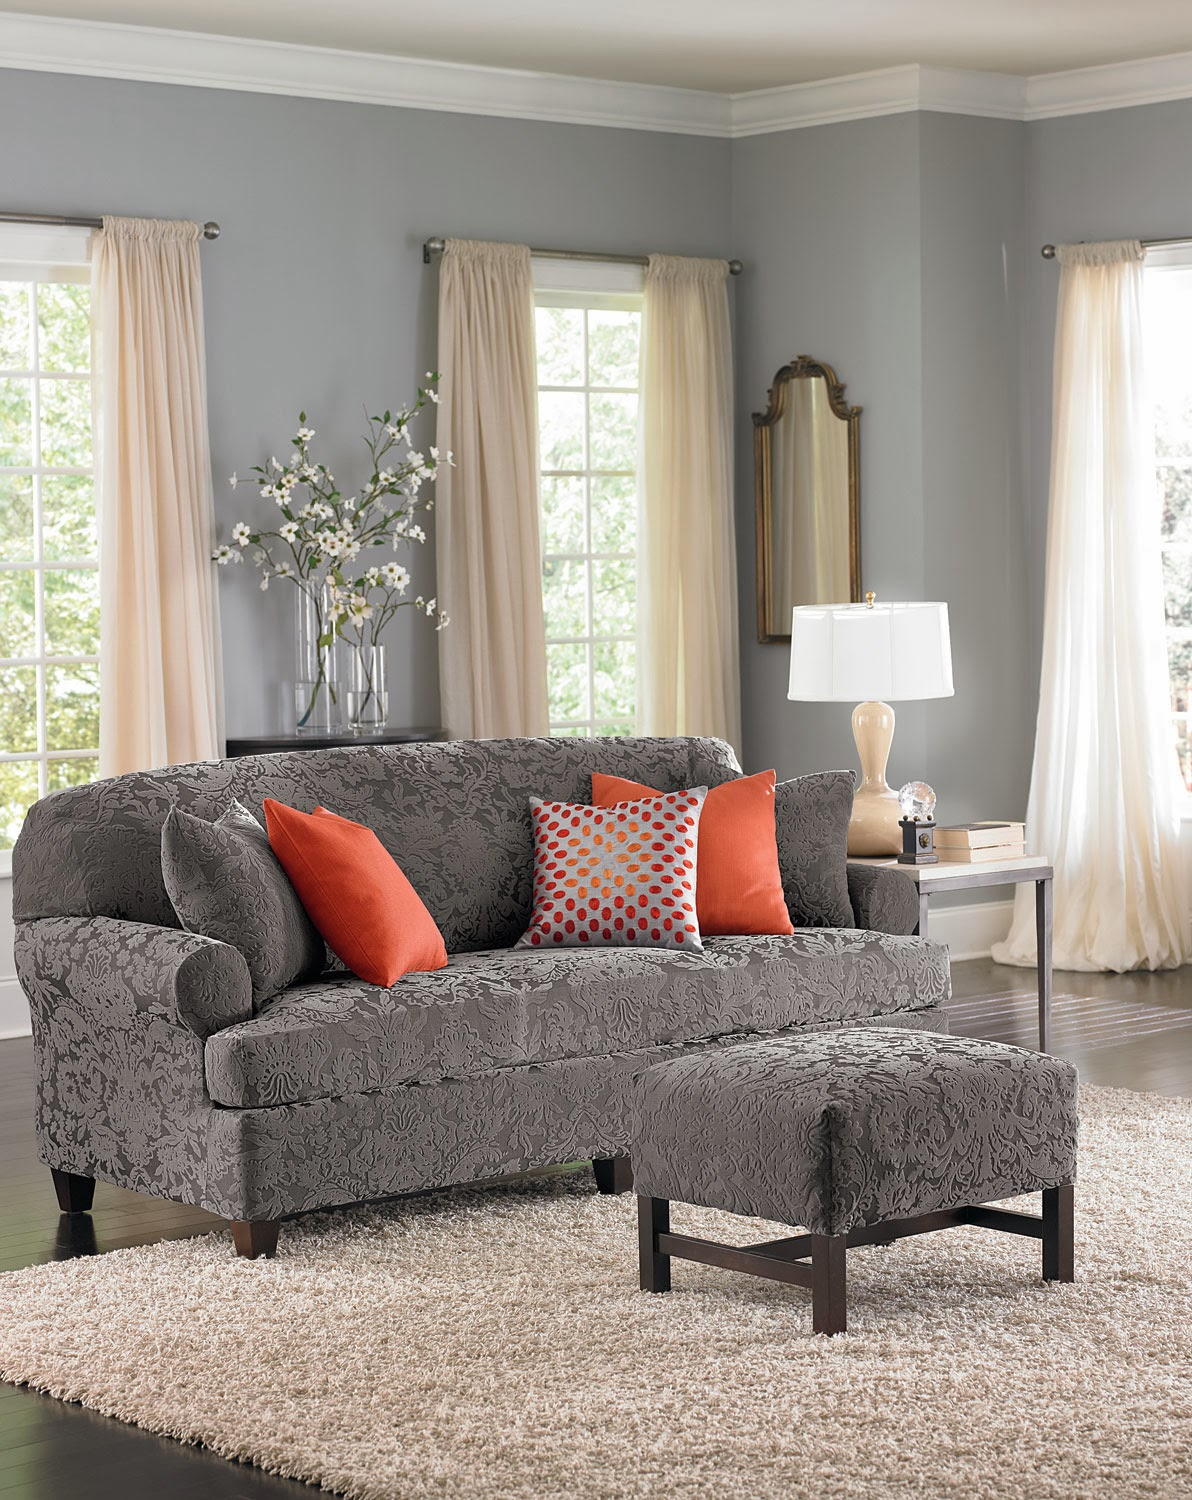 http://www.surefit.net/shop/categories/sofa-loveseat-and-chair-slipcovers-stretch-separate-seat-t-cushions/stretch-jacquard-damask-two-piece-t-cushion.cfm?sku=41460&stc=0526100001